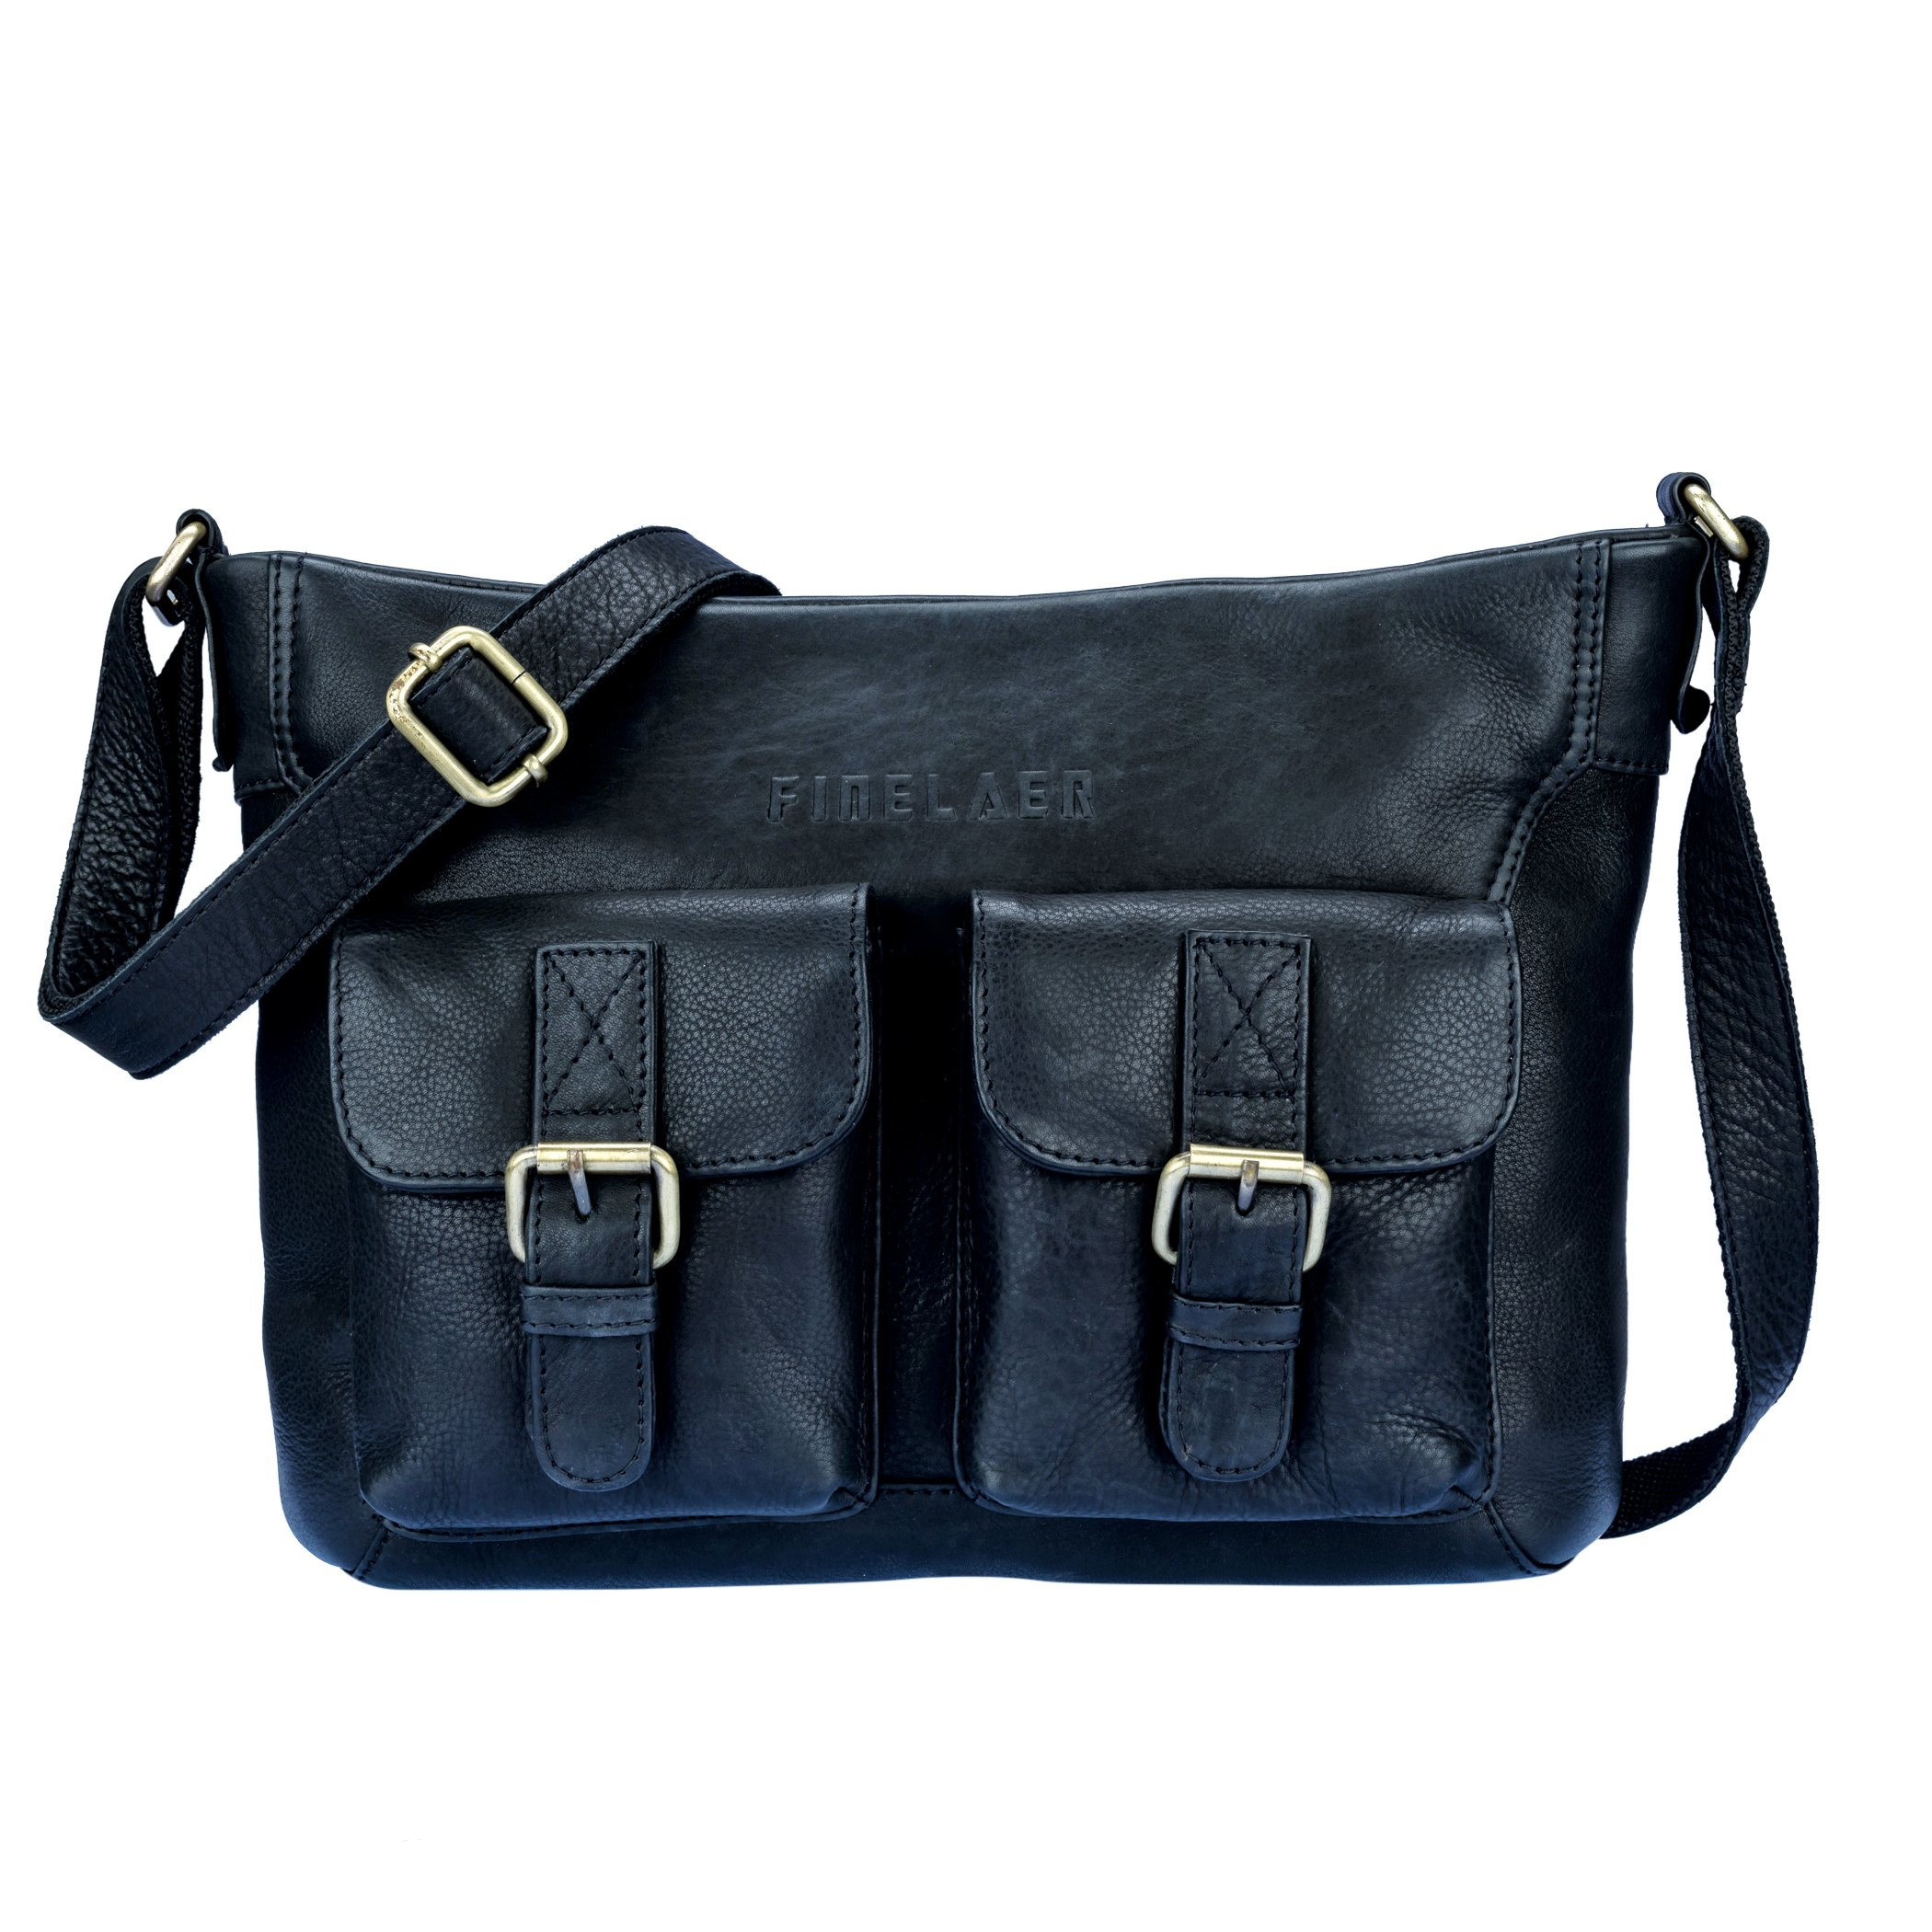 Women Vintage Leather Saddle Crossbody Bag with Front Pockets Black | Finelaer